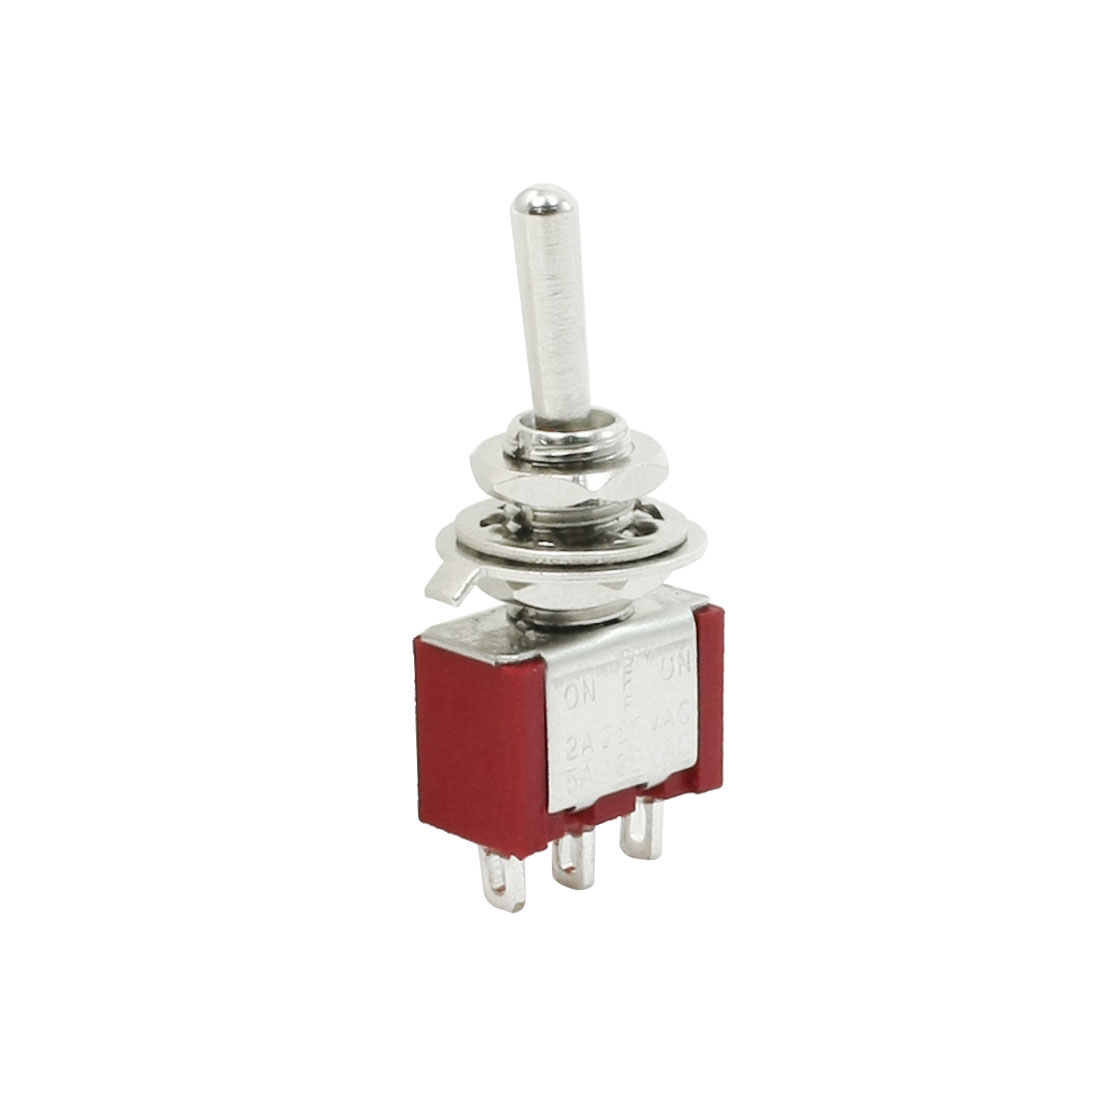 AC 250V/2A 120V/5A SPCO 3 Position ON/Off/ON Toggle Switch